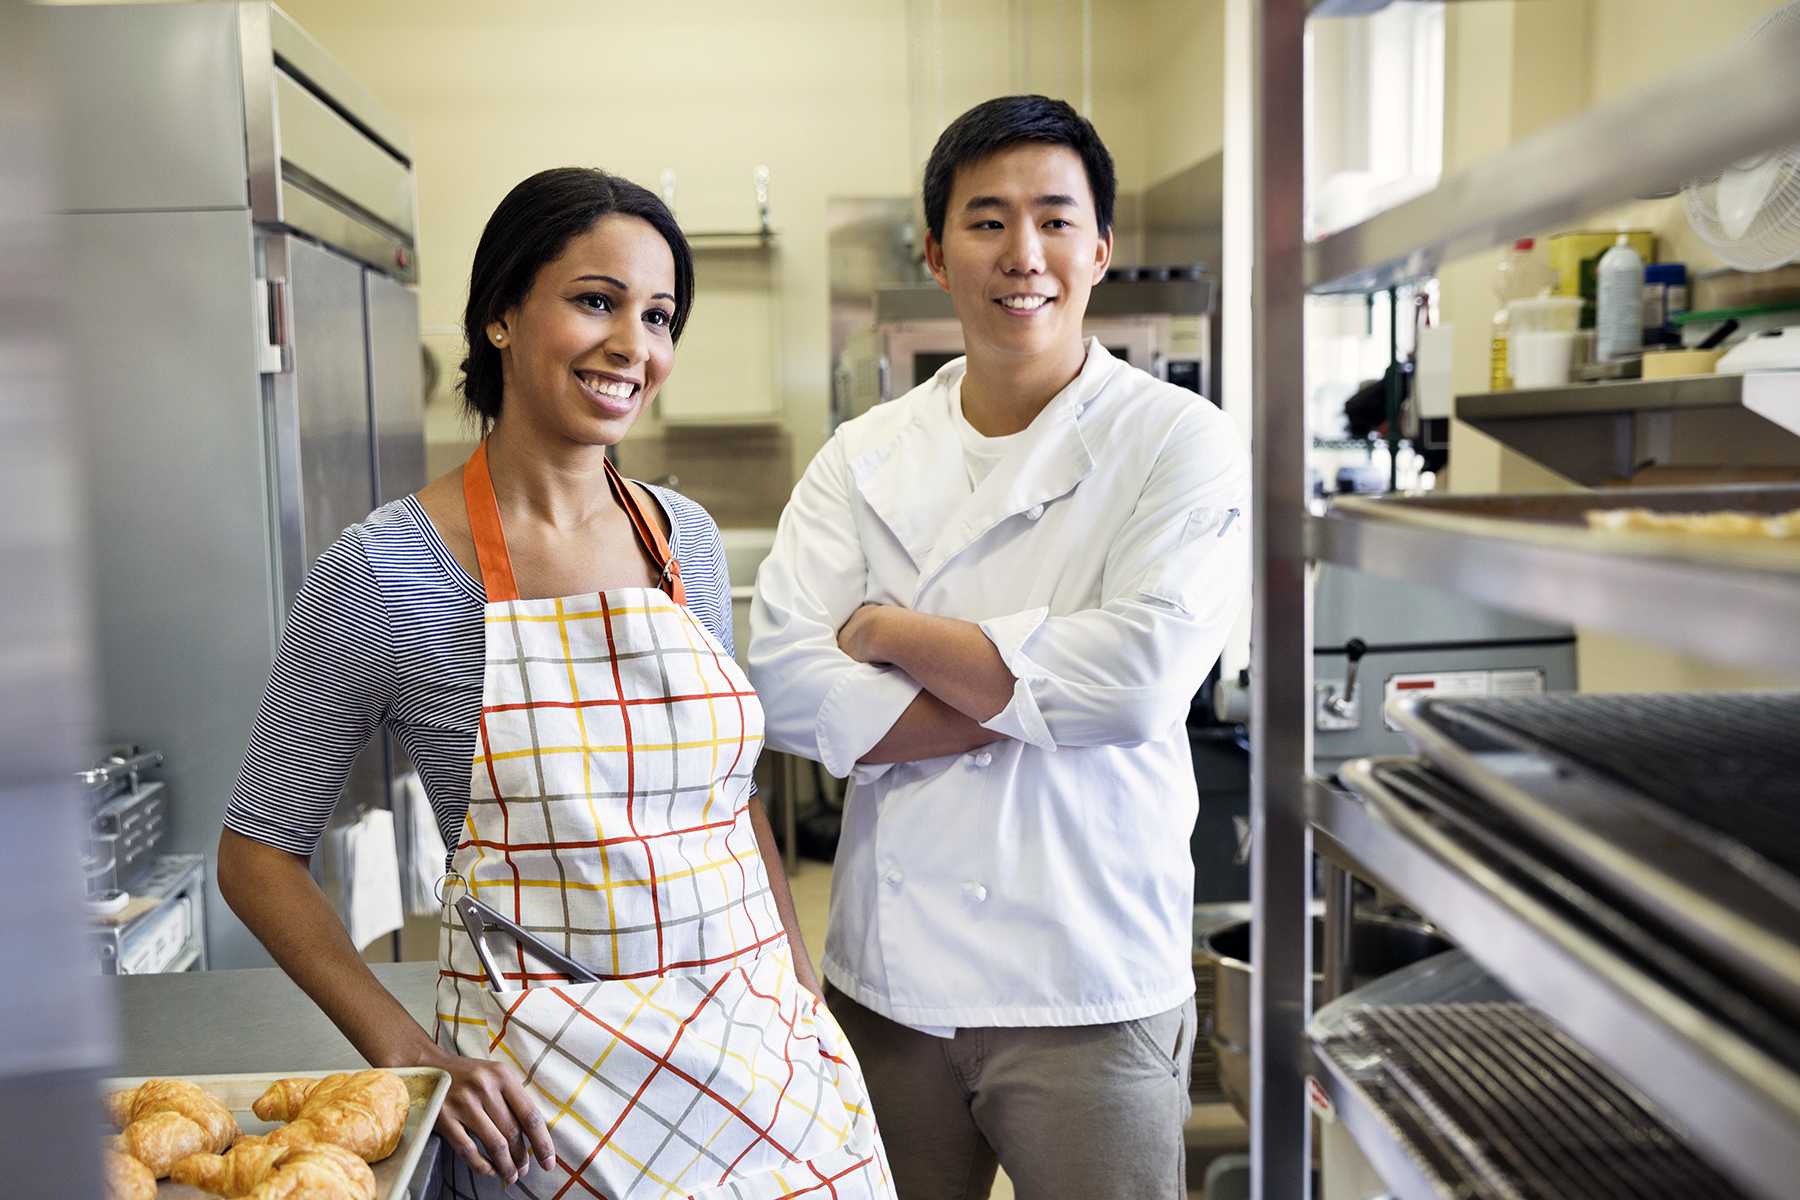 Smiling bakers standing in bakery